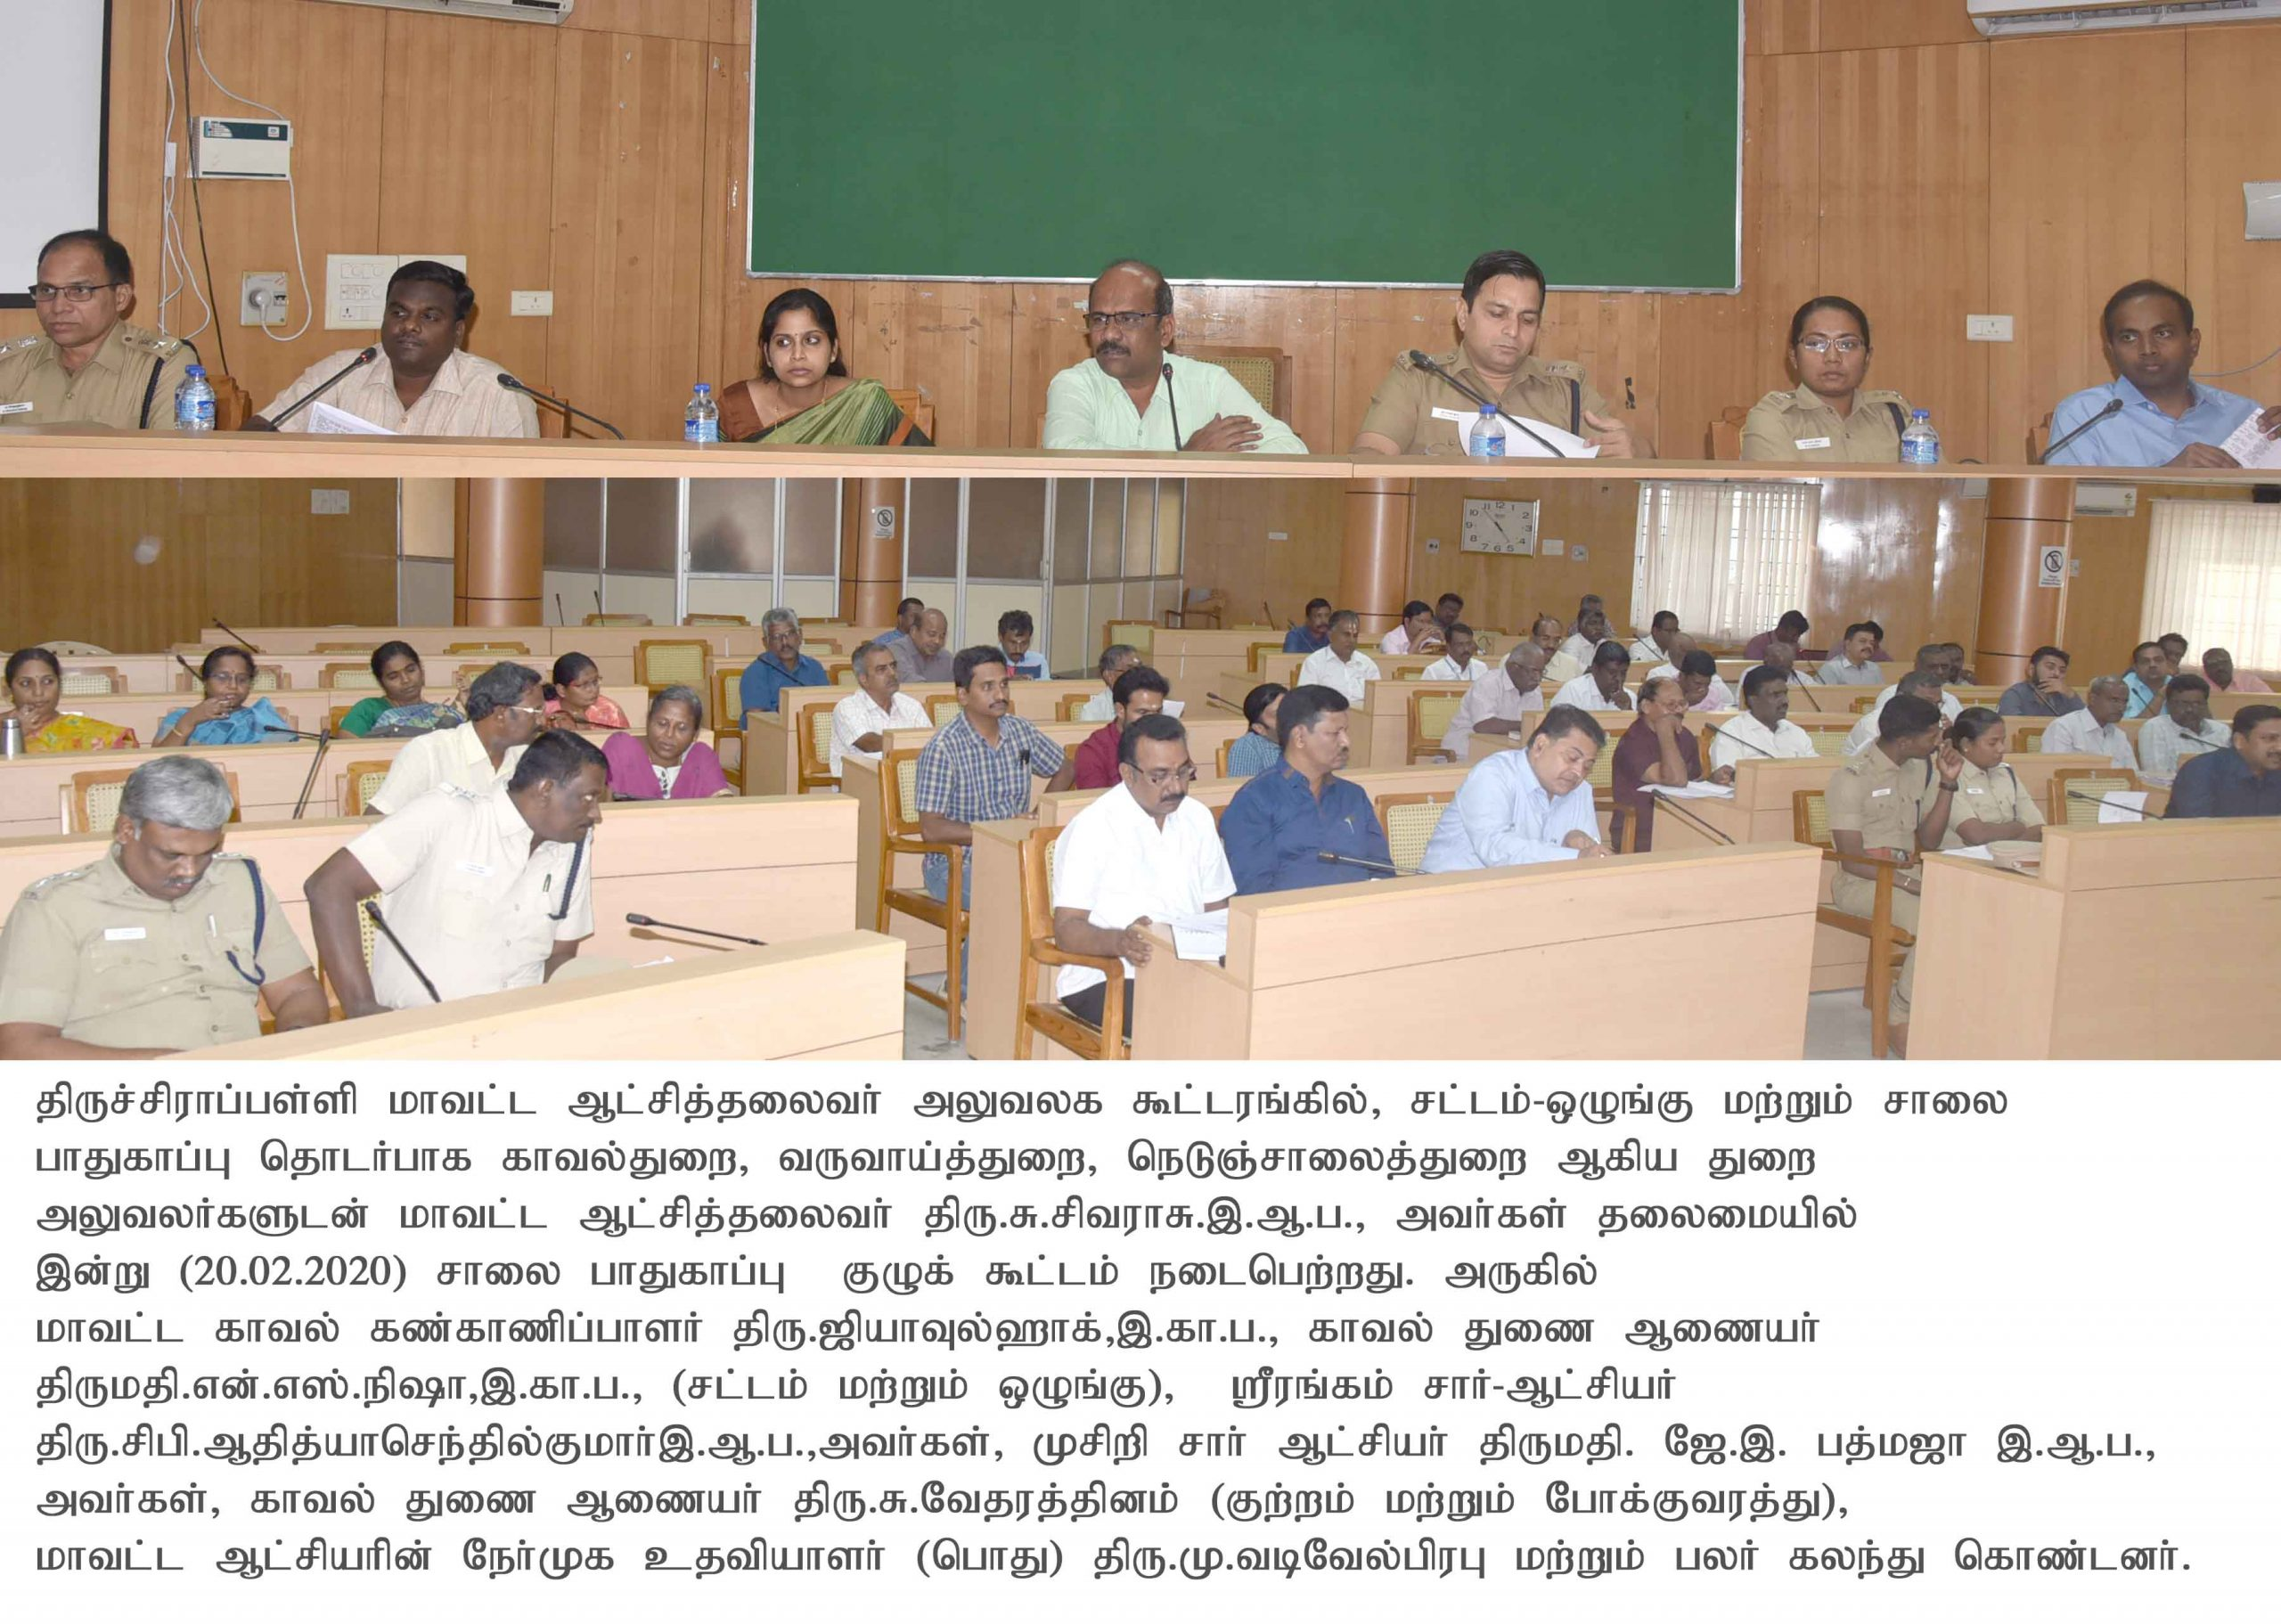 Law and Order Meeting held on 20-02-2020